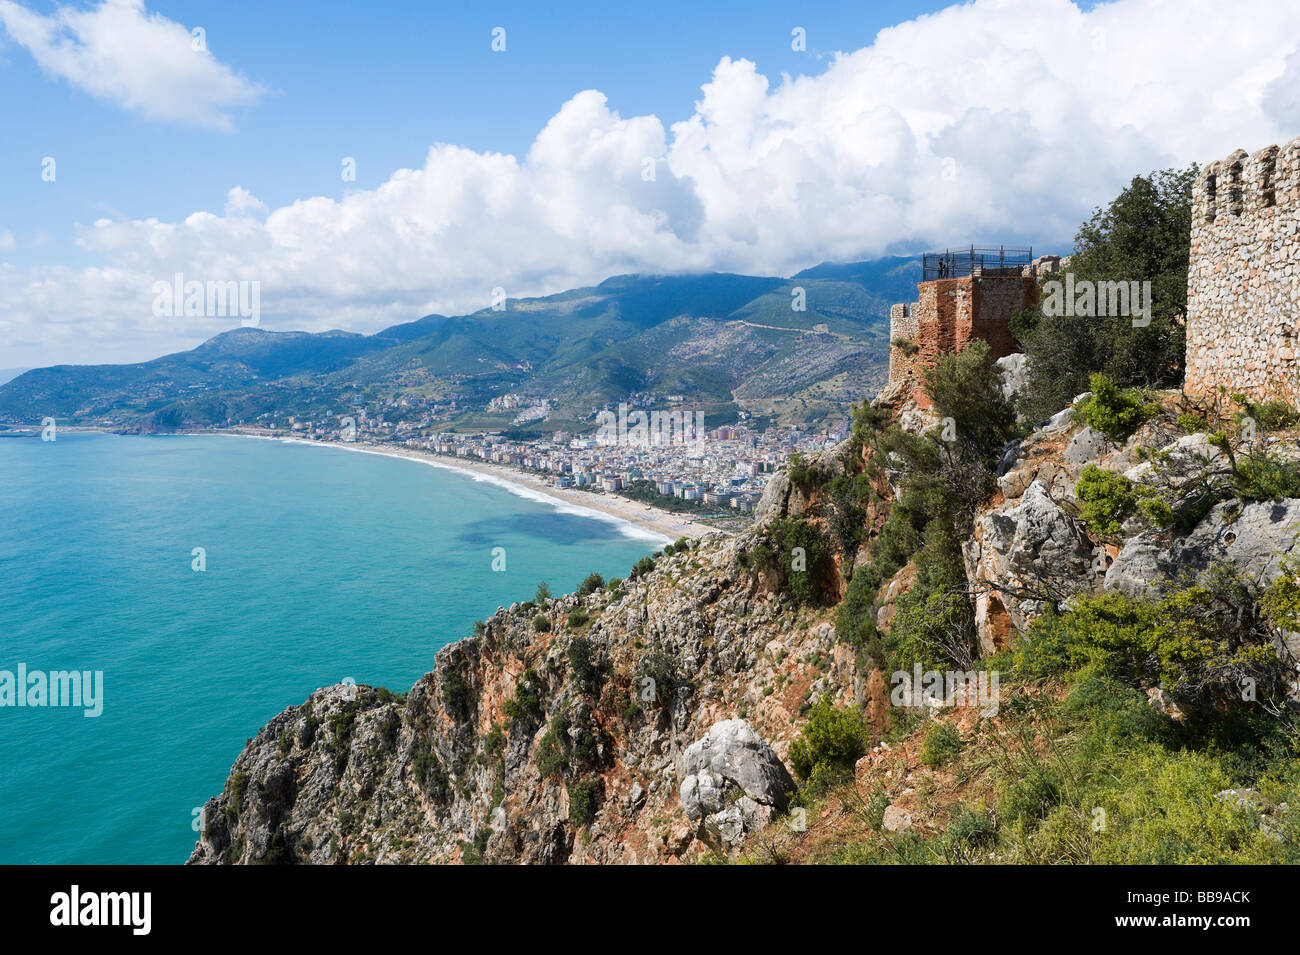 View over Kleopatra Beach from the Inner Castle (Ic Kale), Alanya, Mediterranean Coast, Turkey - Stock Image